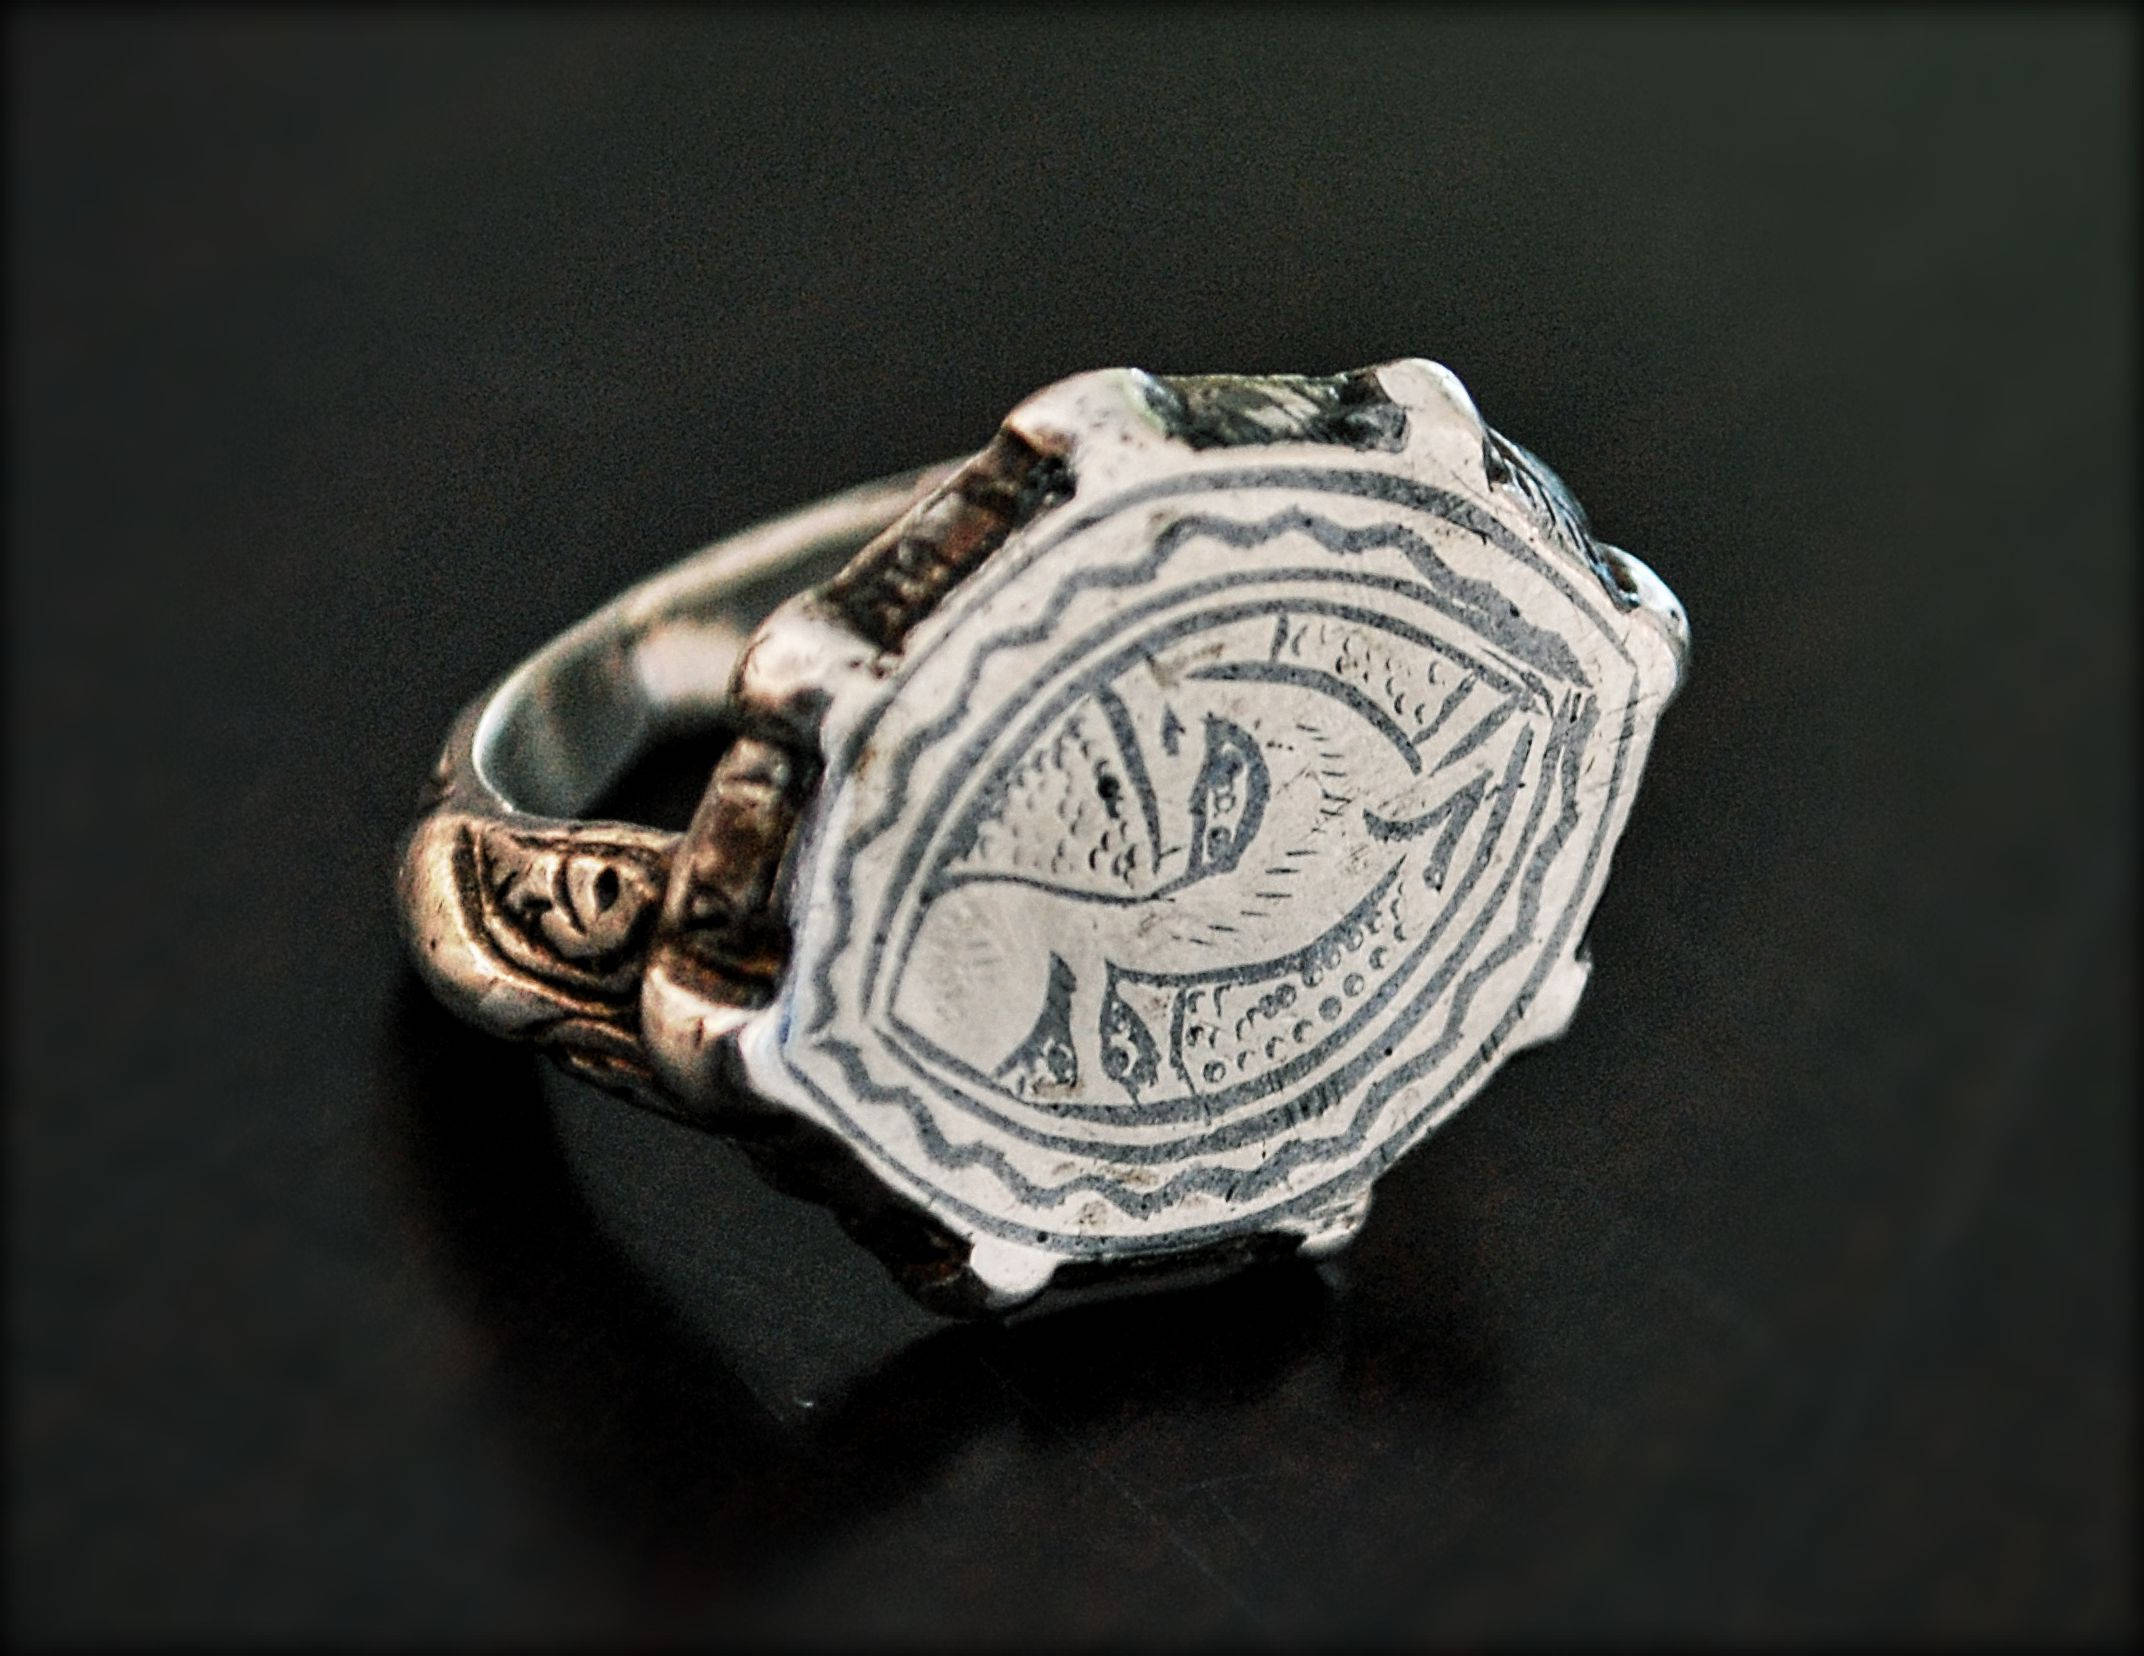 Old Turkmen Signet Ring with Deer - Size  10 - Islamic Silver Signet Ring - Ethnic Tribal Silver Ring